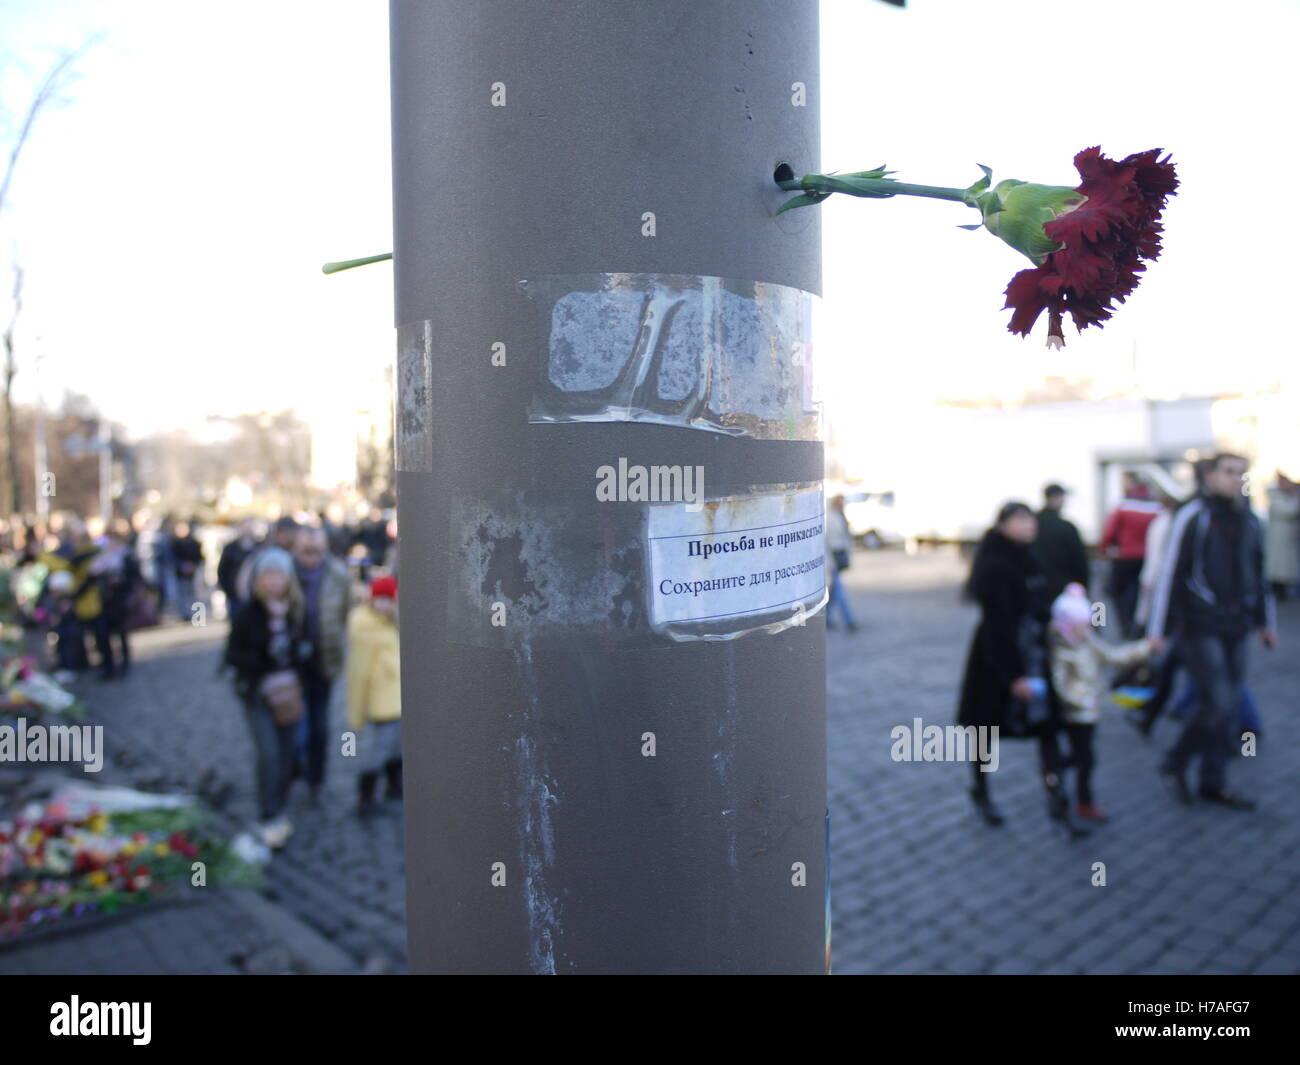 In Kiev city center, a flower in a bullet hole pays tribute to victims of revolution, a few days after fall of Yanukovych - Stock Image